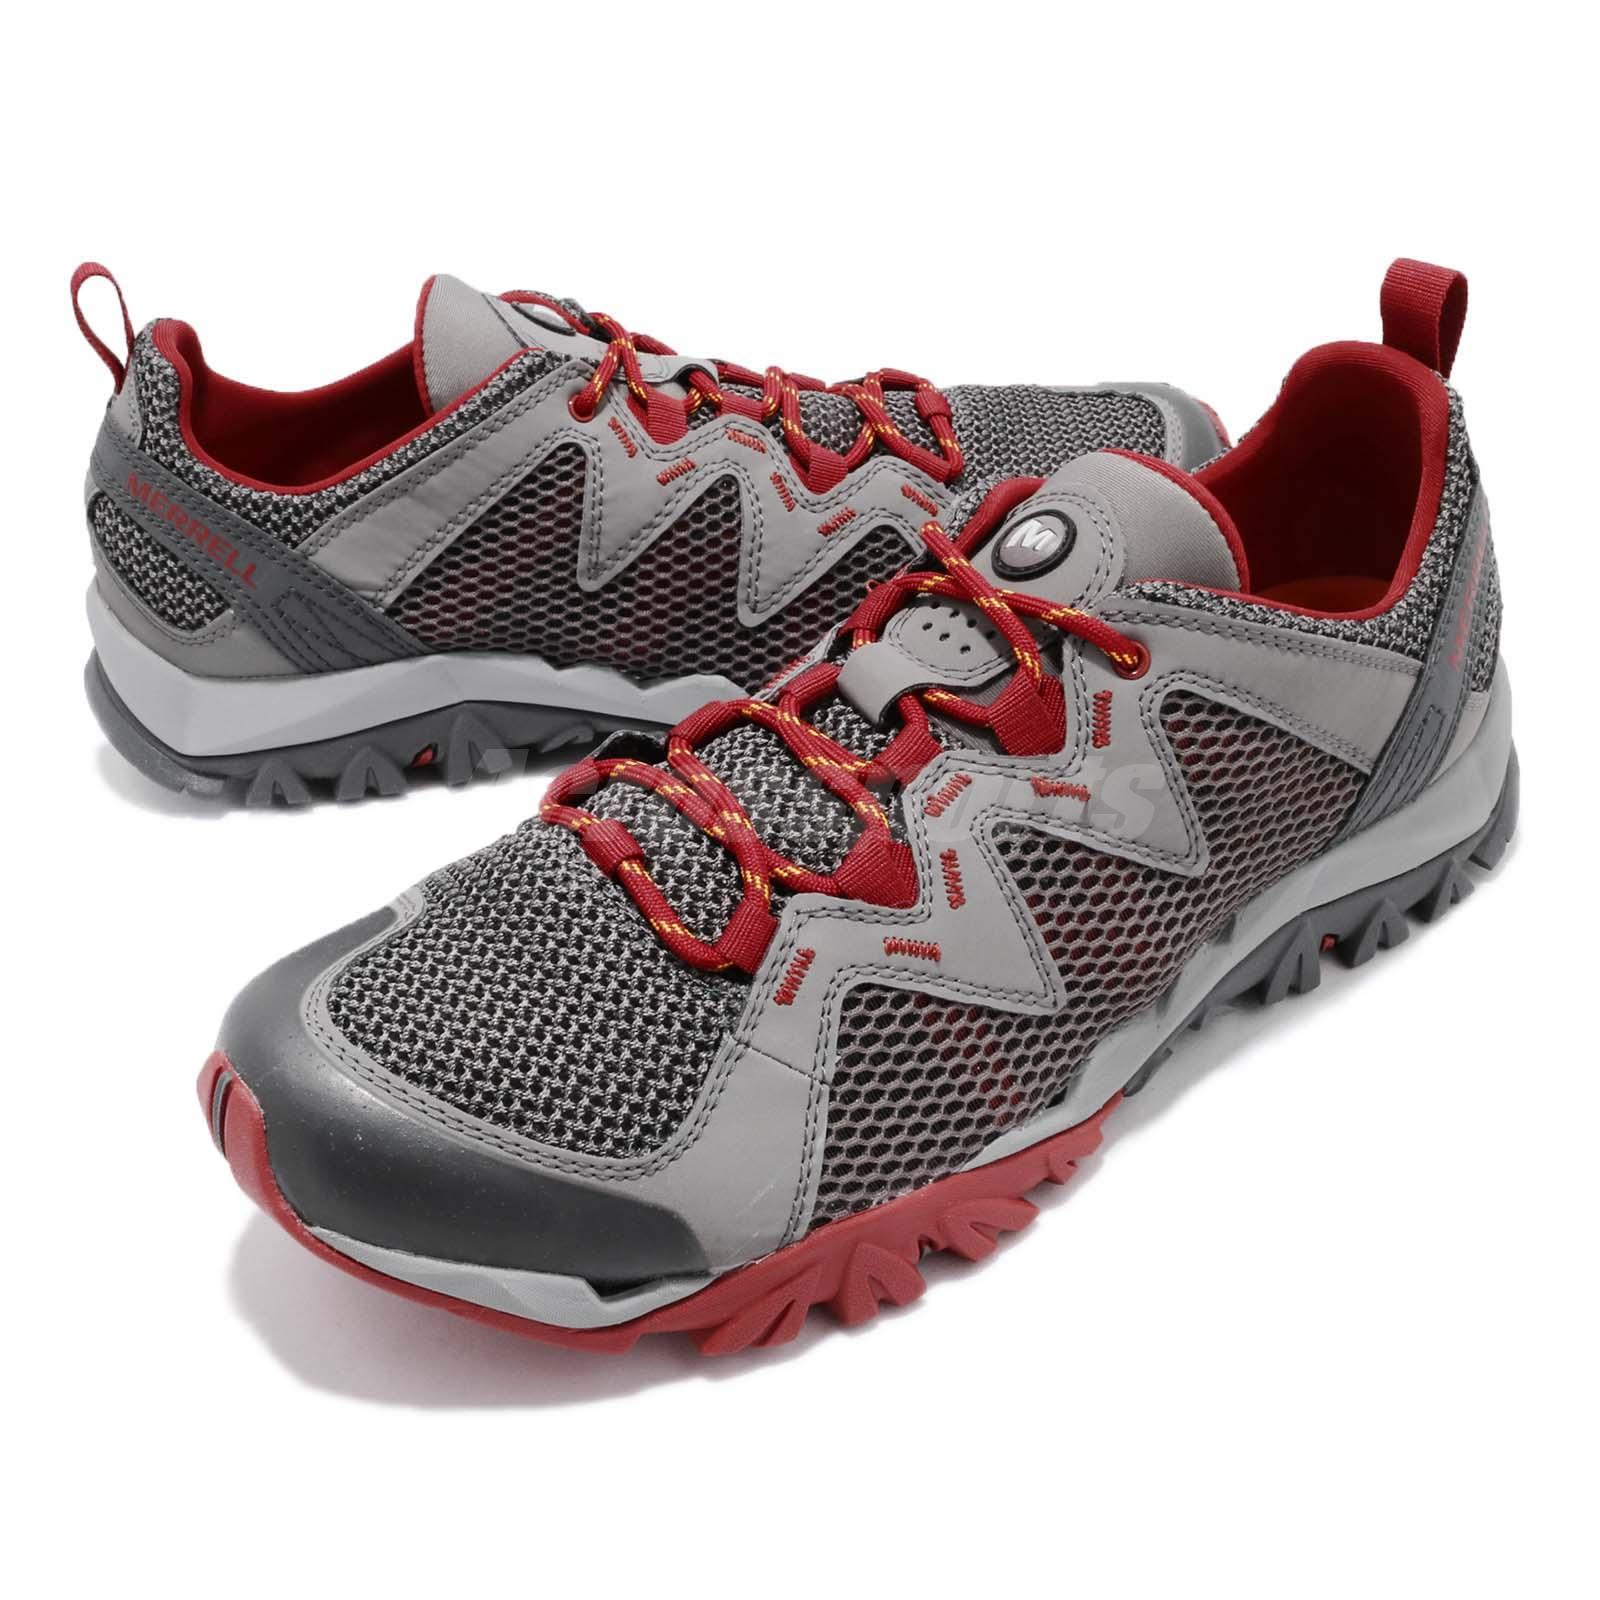 ff4ec6751e62 Details about Merrell Tetrex Rapid Crest Grey Red Men Outdoors Hiking Water  Shoes J12855